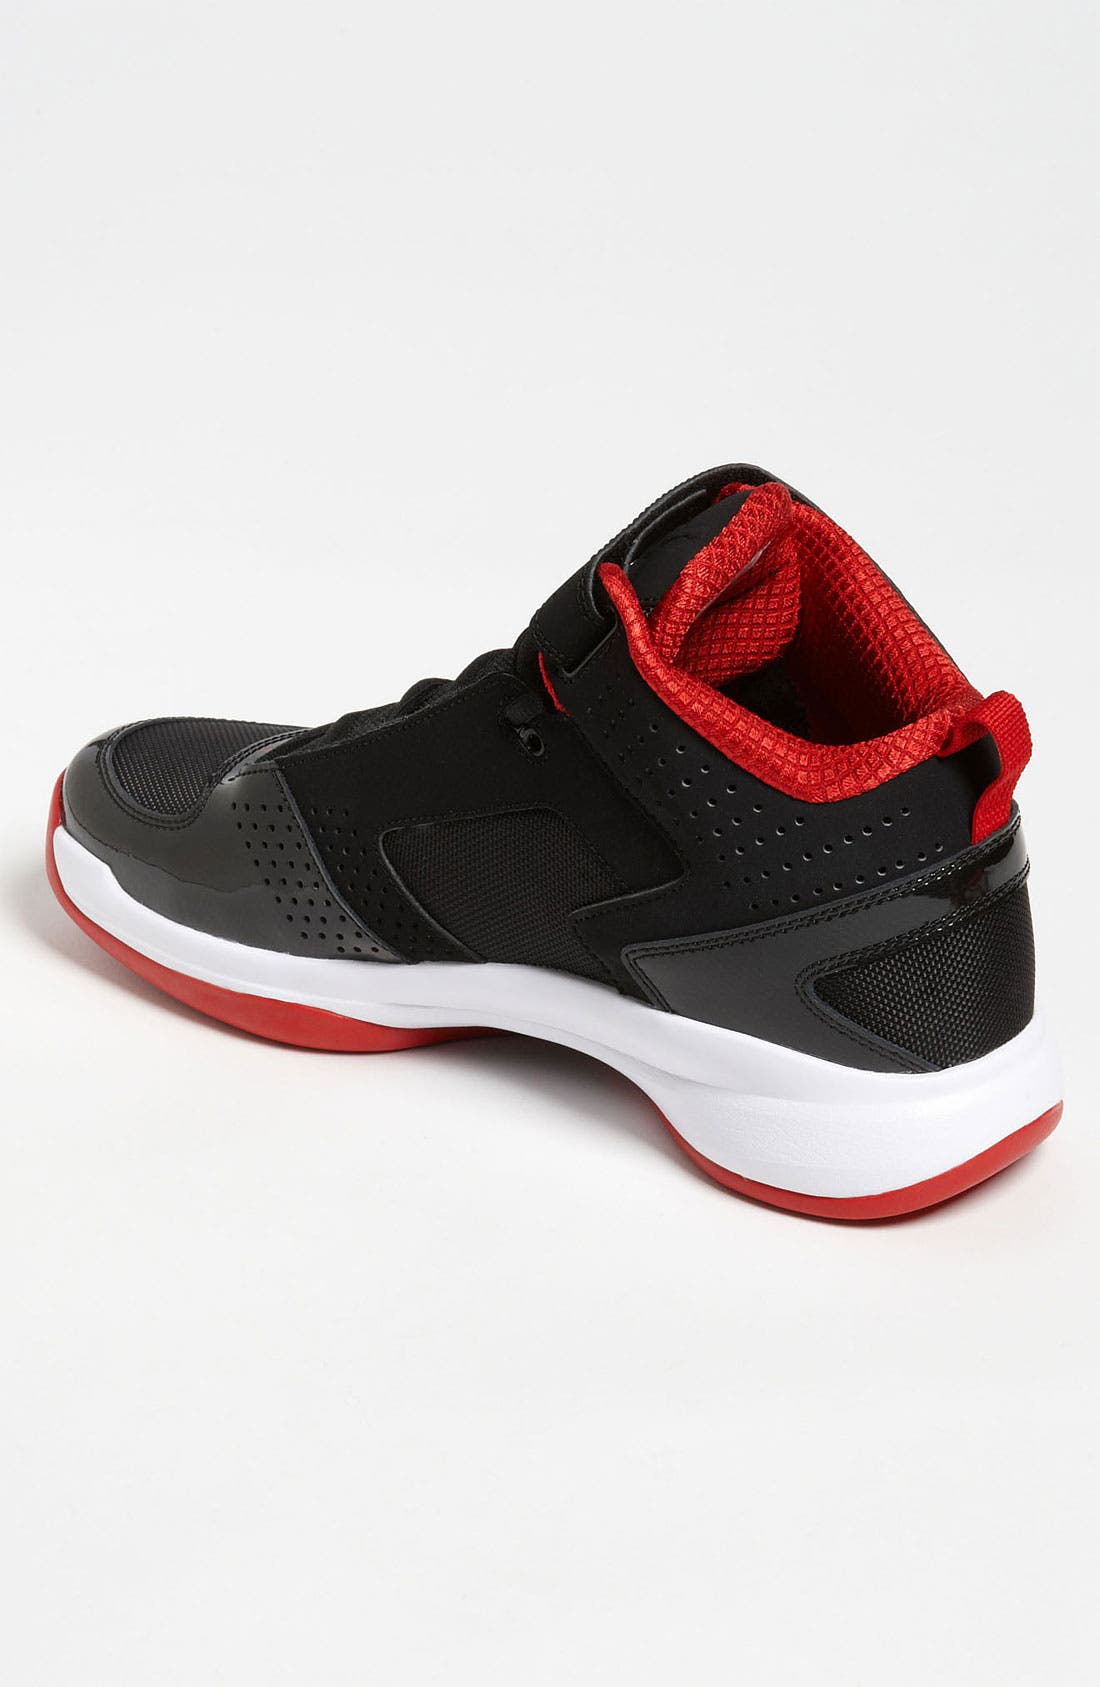 Alternate Image 2  - Nike 'Jordan BCT Mid' Basketball Shoe (Men)